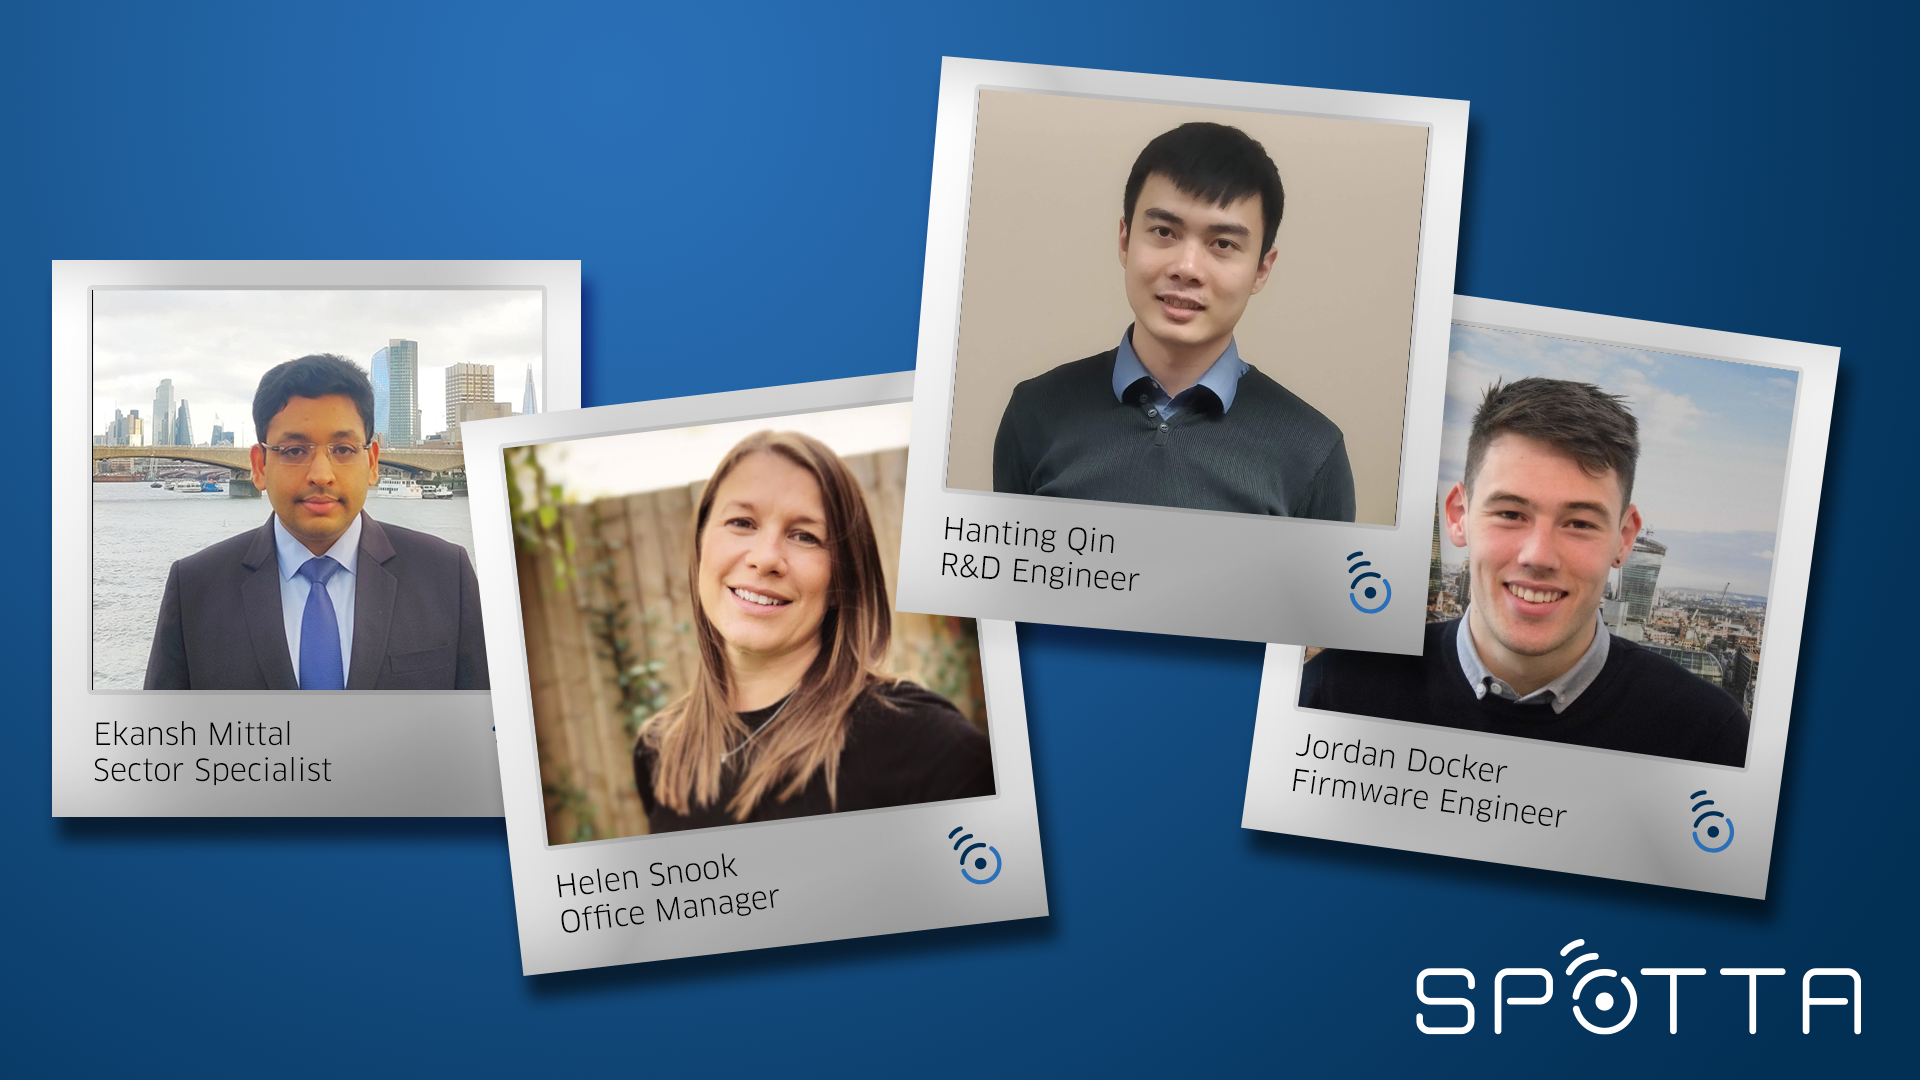 Meet the new team members at Spotta